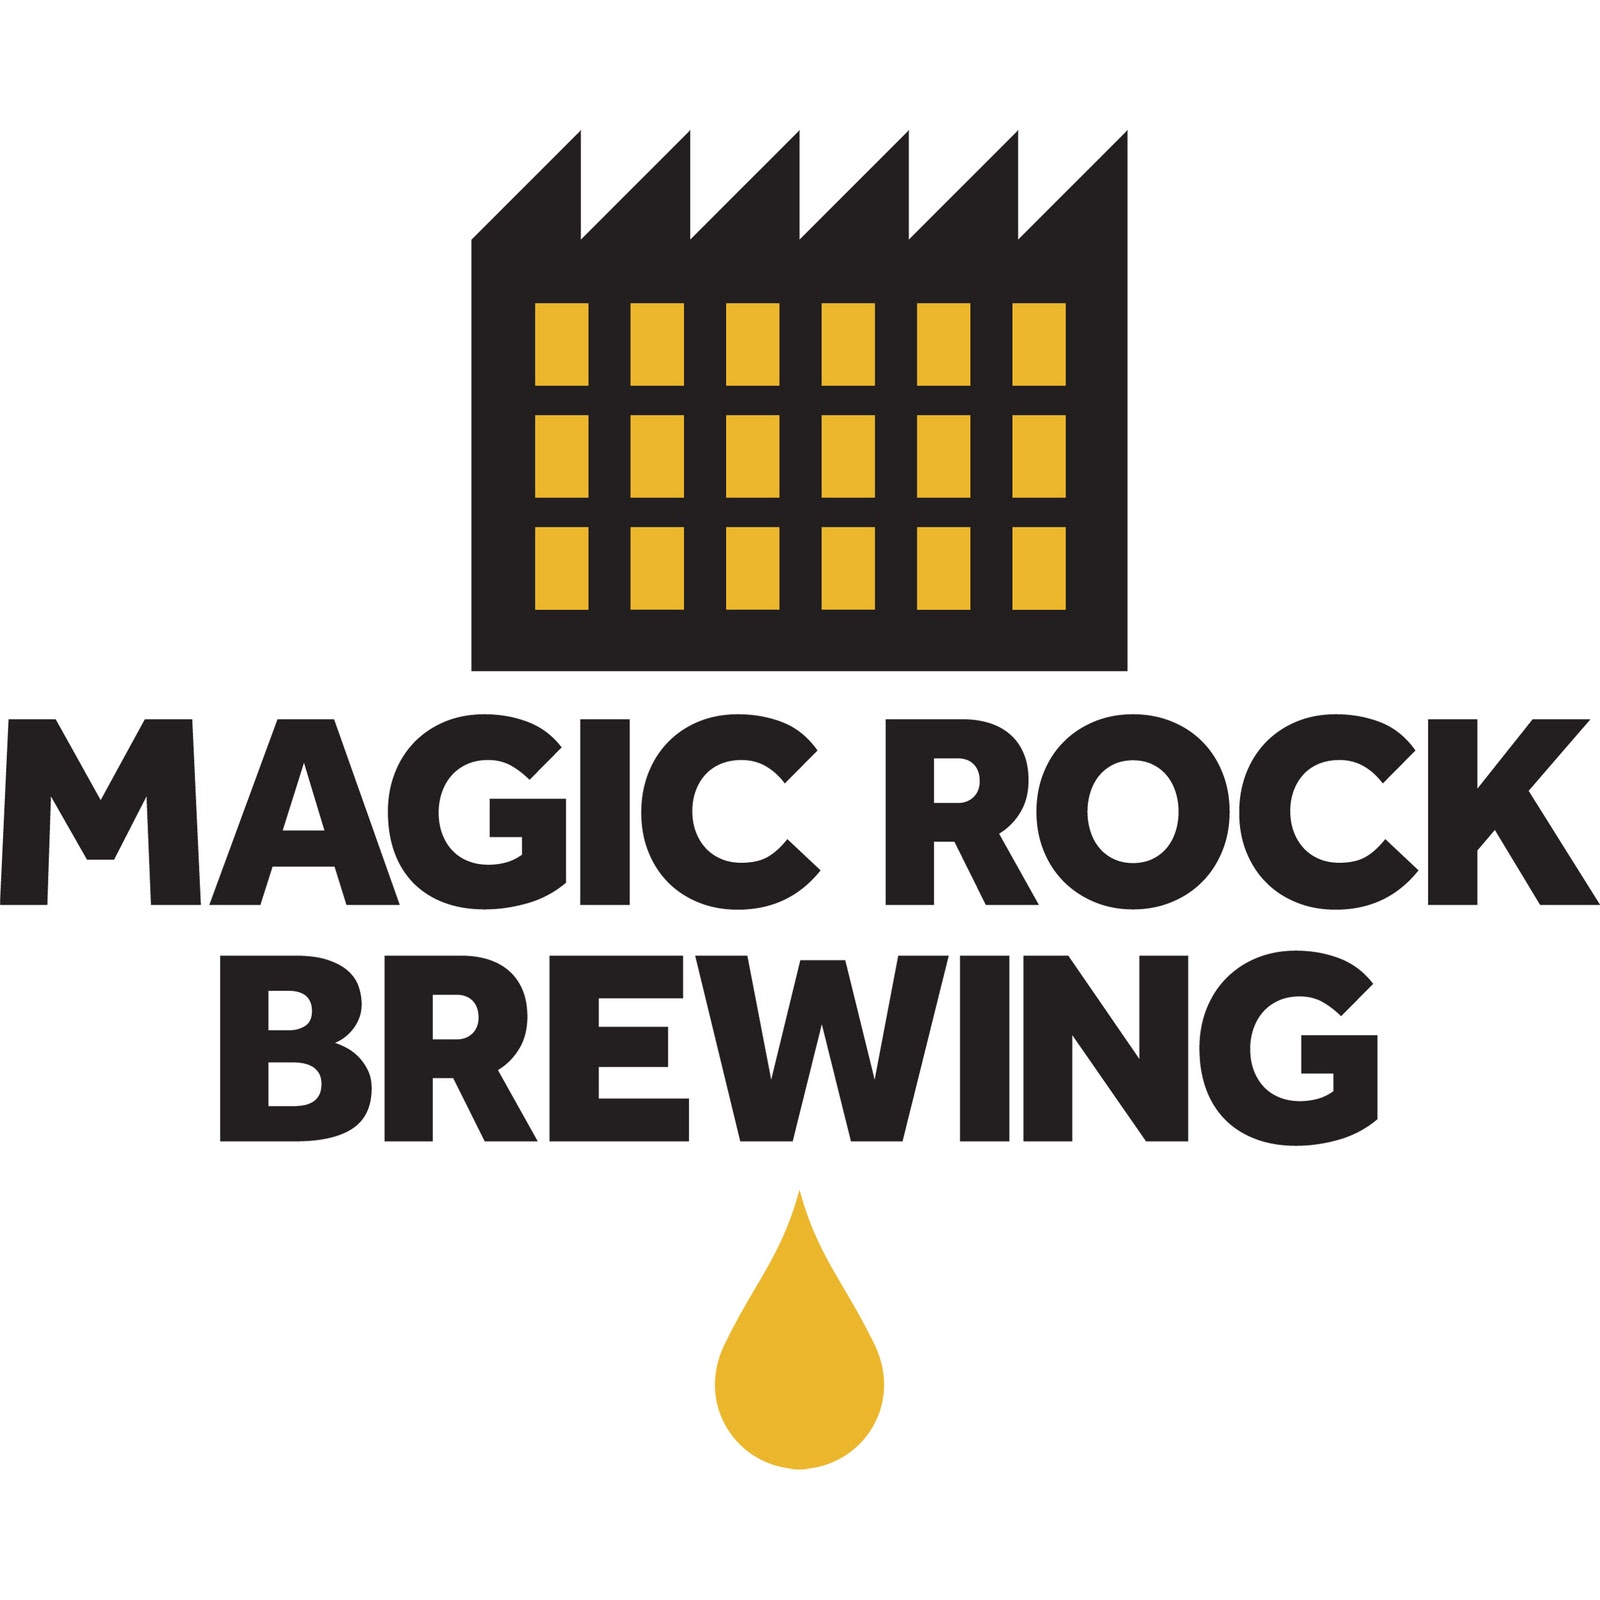 https://www.magicrockbrewing.com/https://www.magicrockbrewing.com/